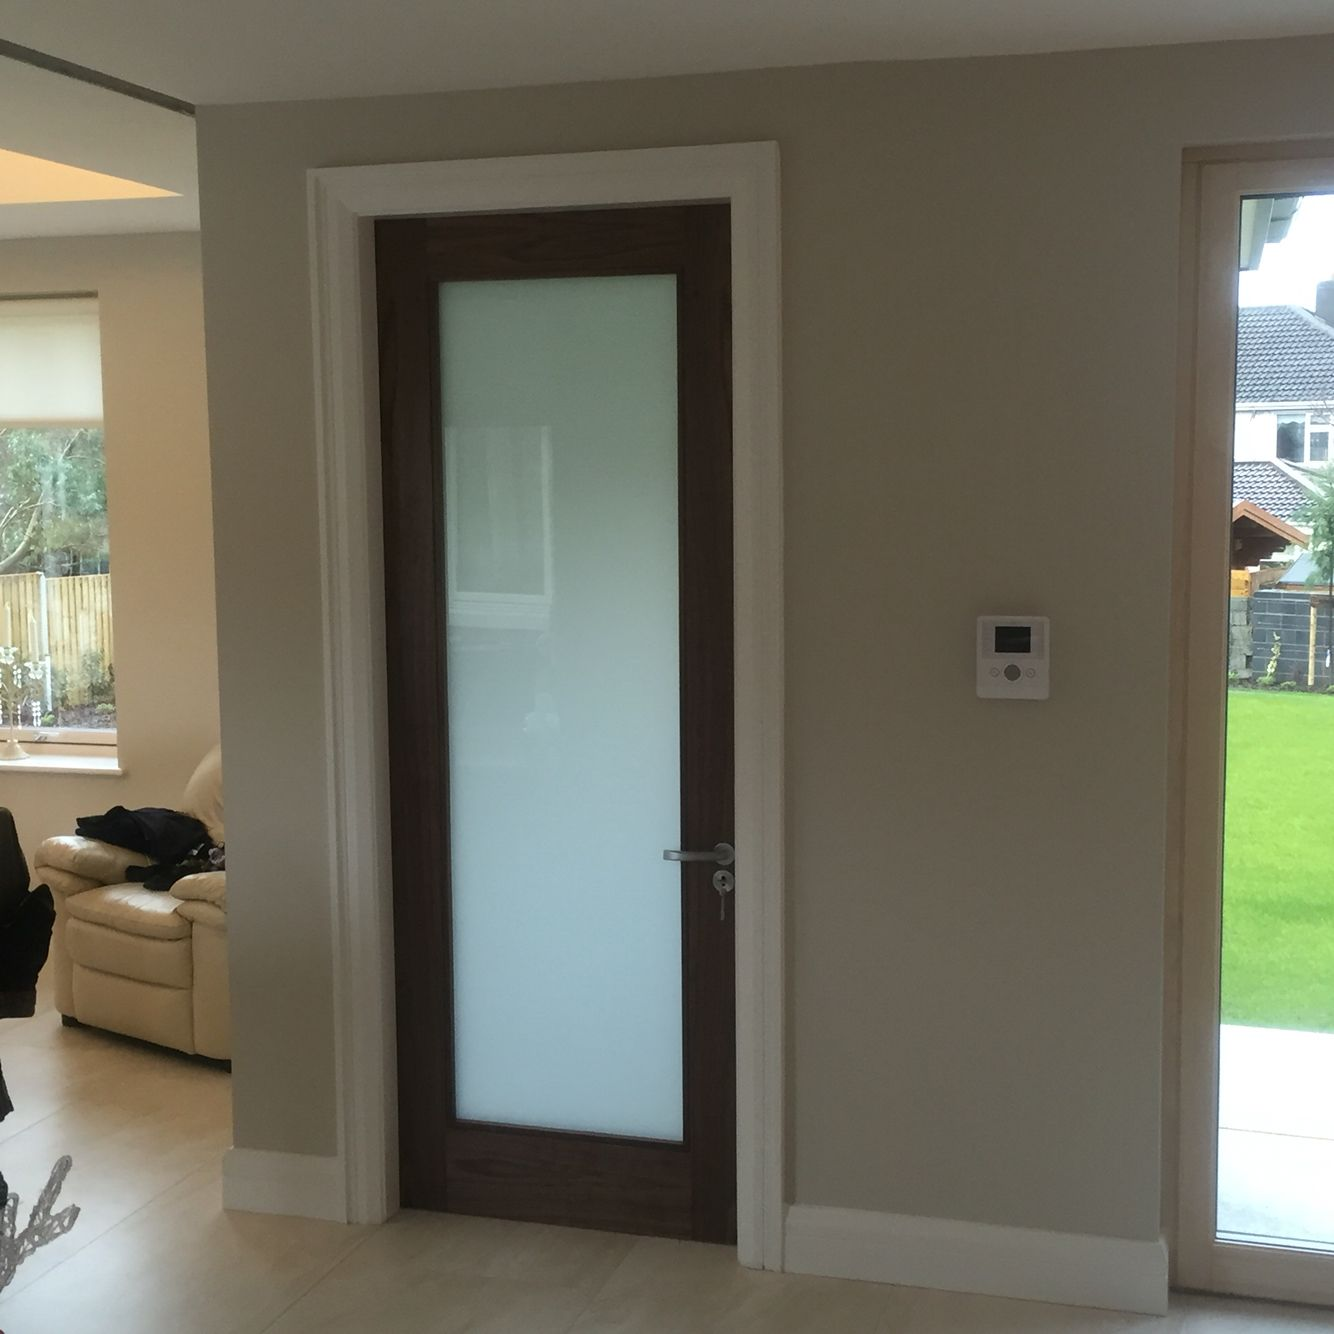 Walnut internal door with frosted glass & Walnut internal door with frosted glass | Internal doors ... Pezcame.Com